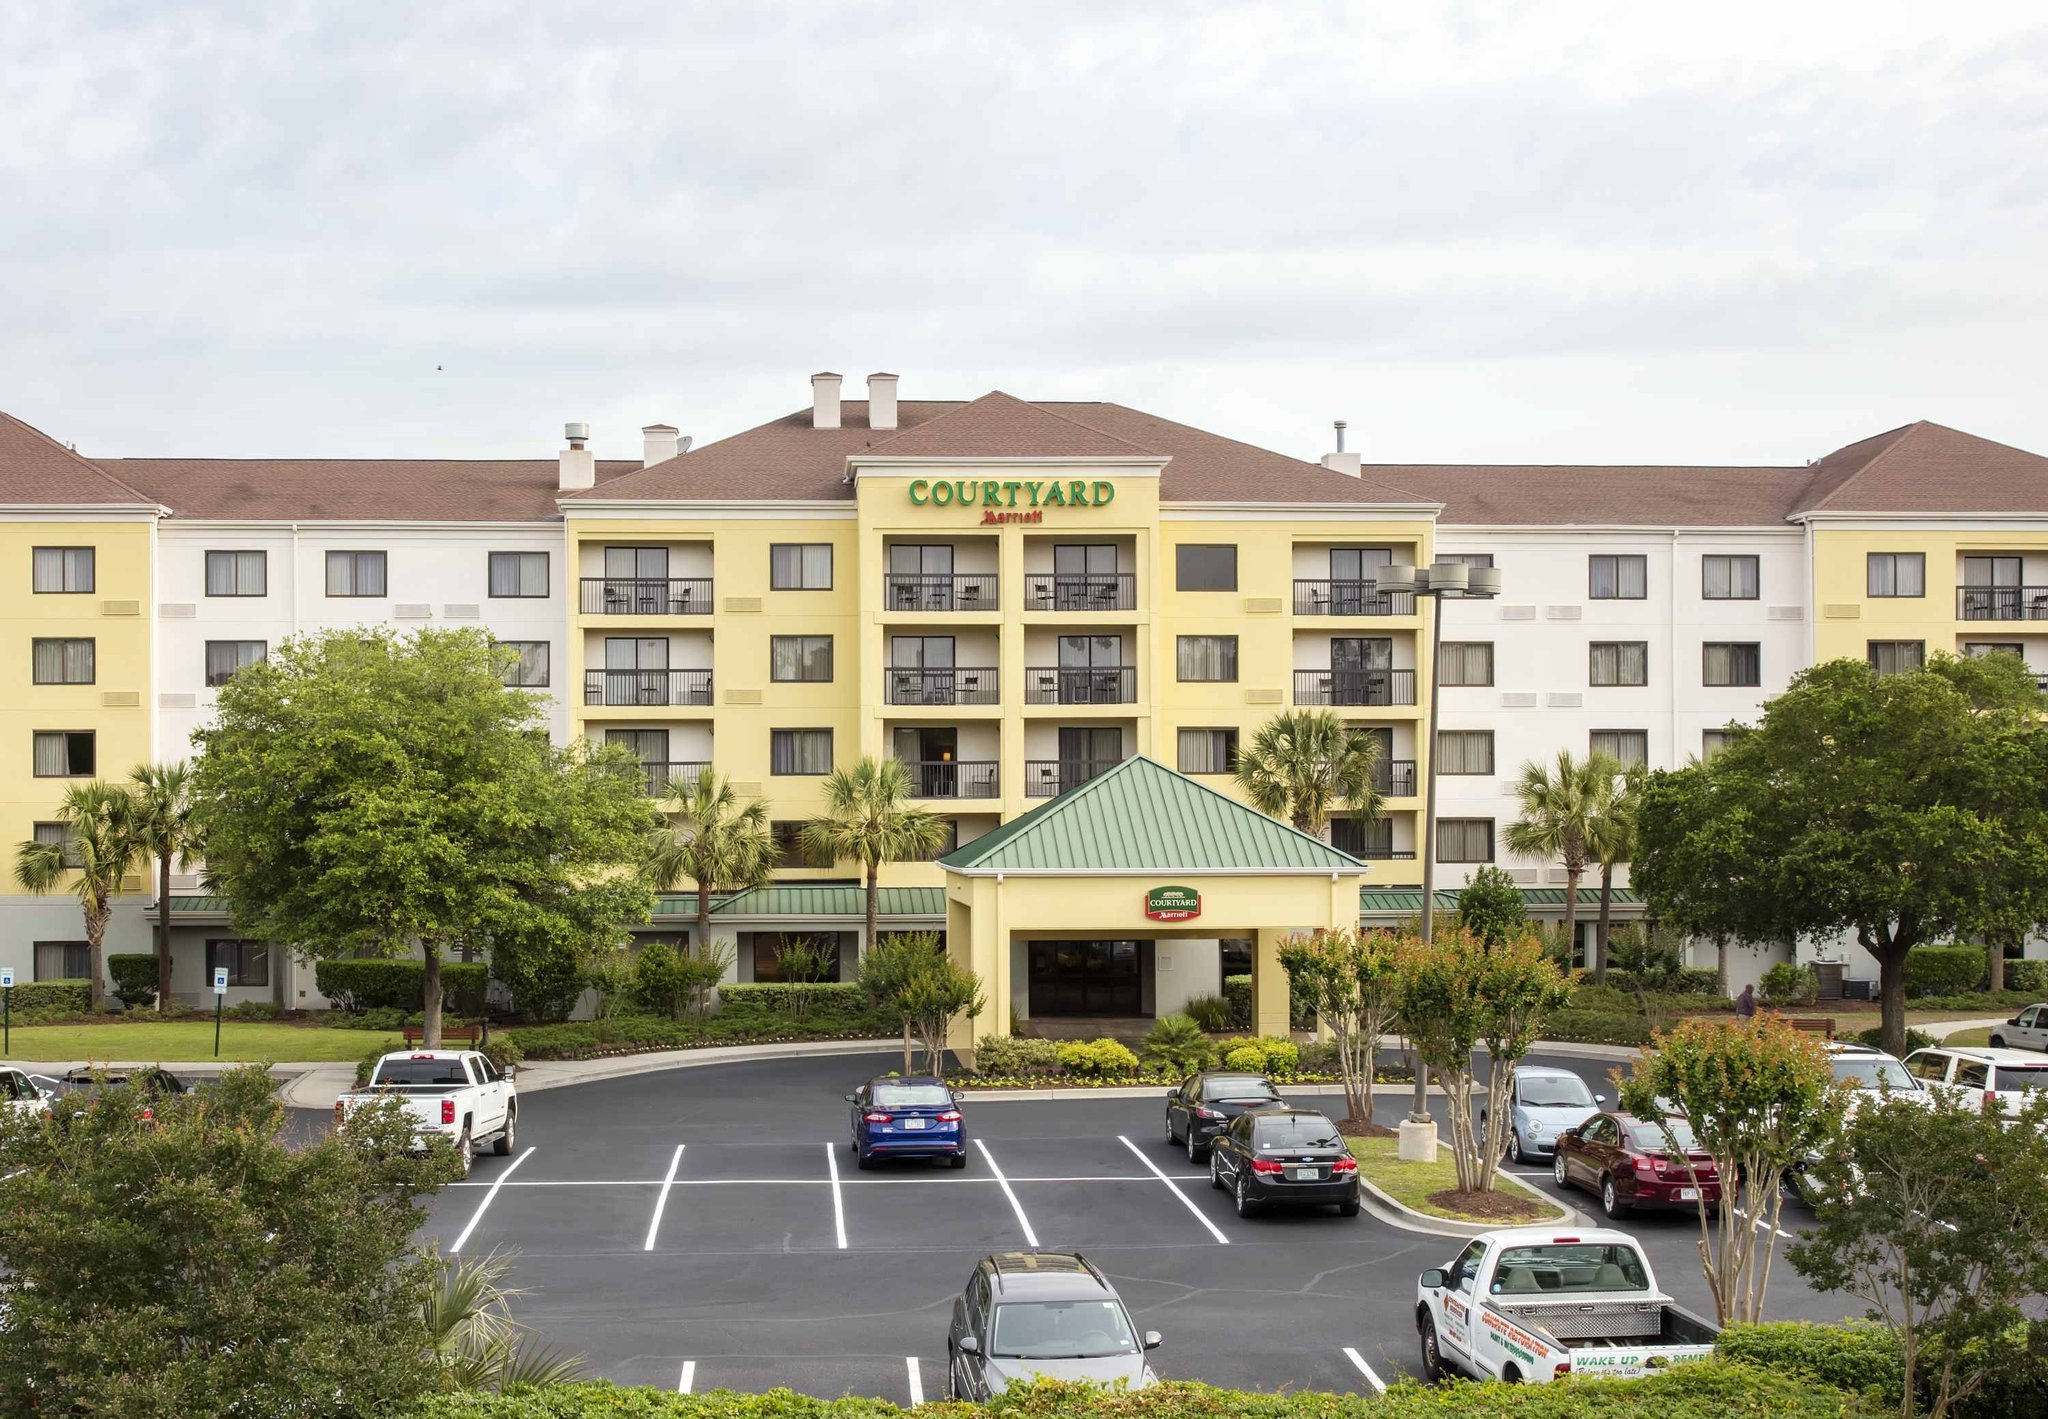 Courtyard myrtle beach barefoot landing sc updated 2016 hotel